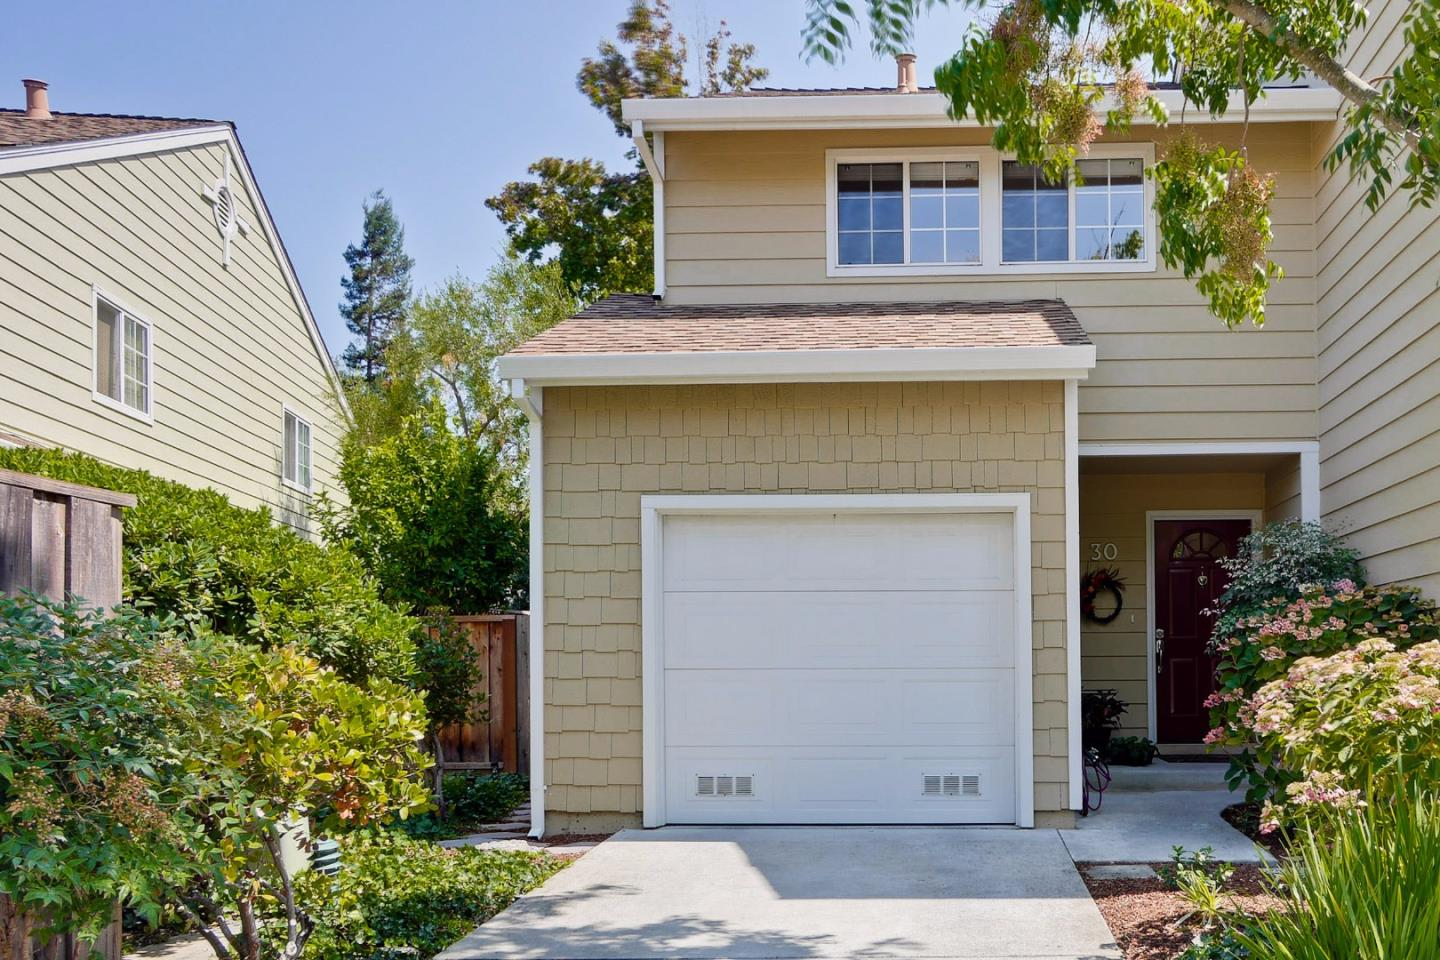 201 Ada Ave #30, Mountain View, CA 94043